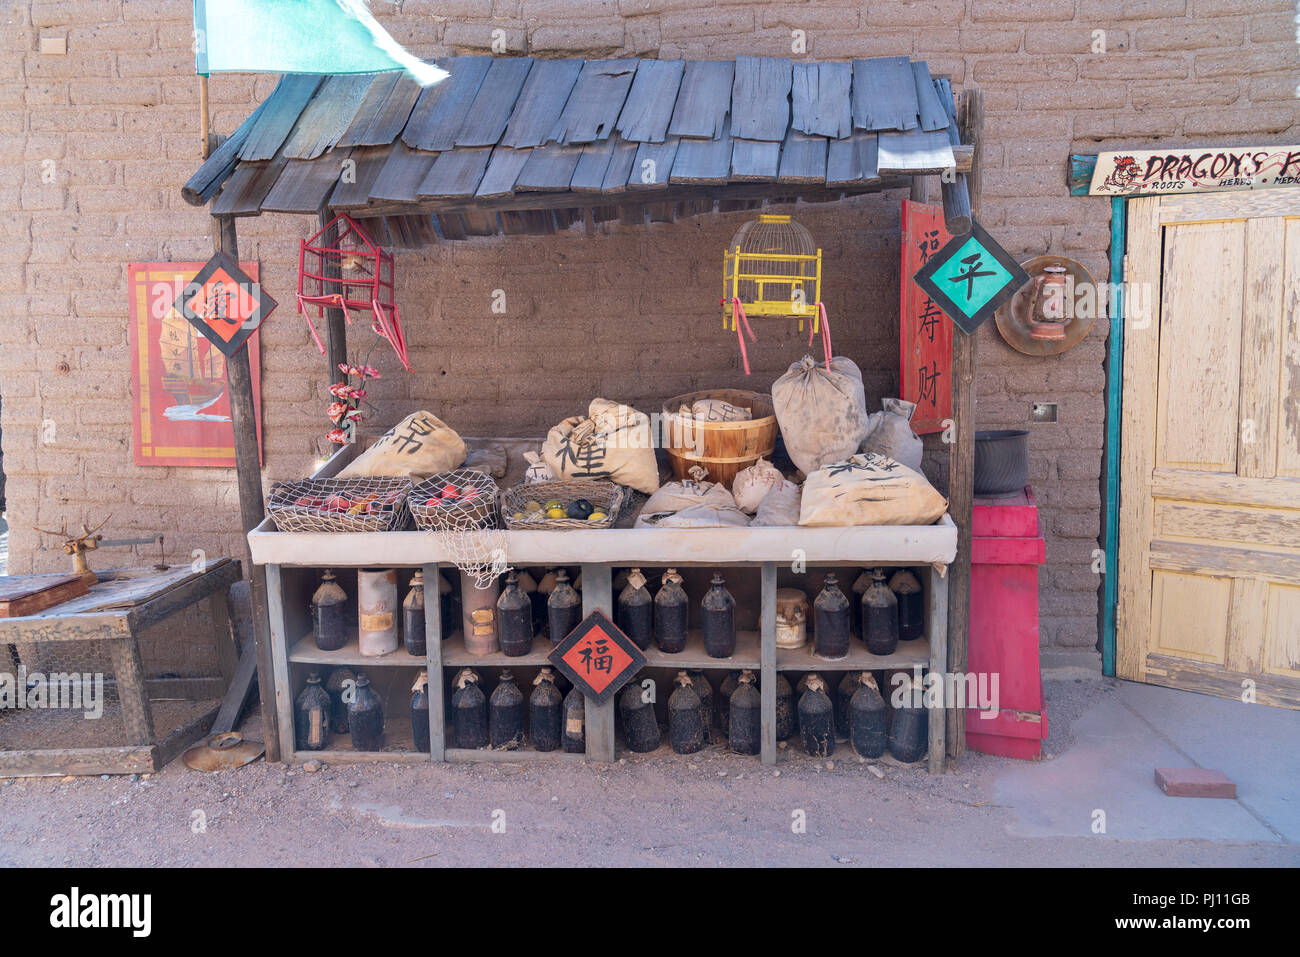 Wooden vendor stand in back alley on movie studios. Old Tucson movie studios. - Stock Image